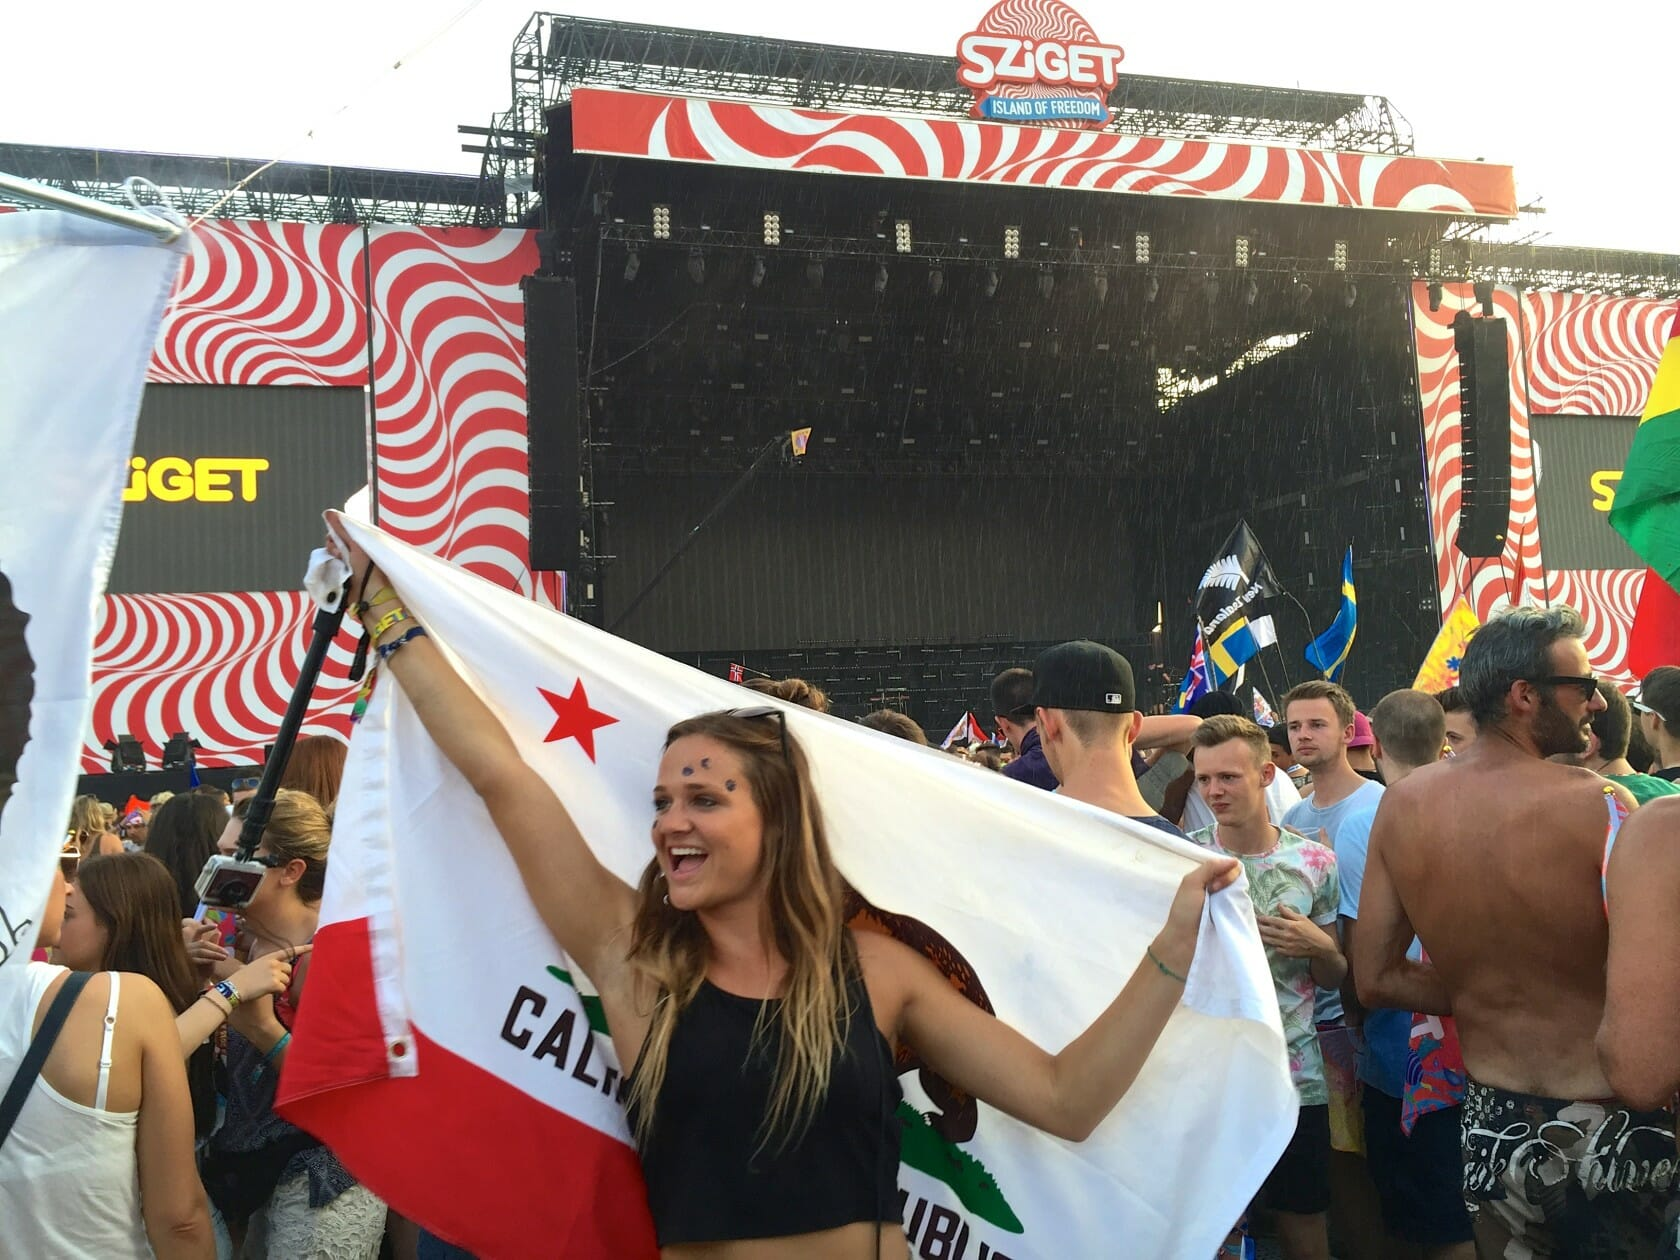 sziget review + festival guide for sziget festival in budapest august festival blogger